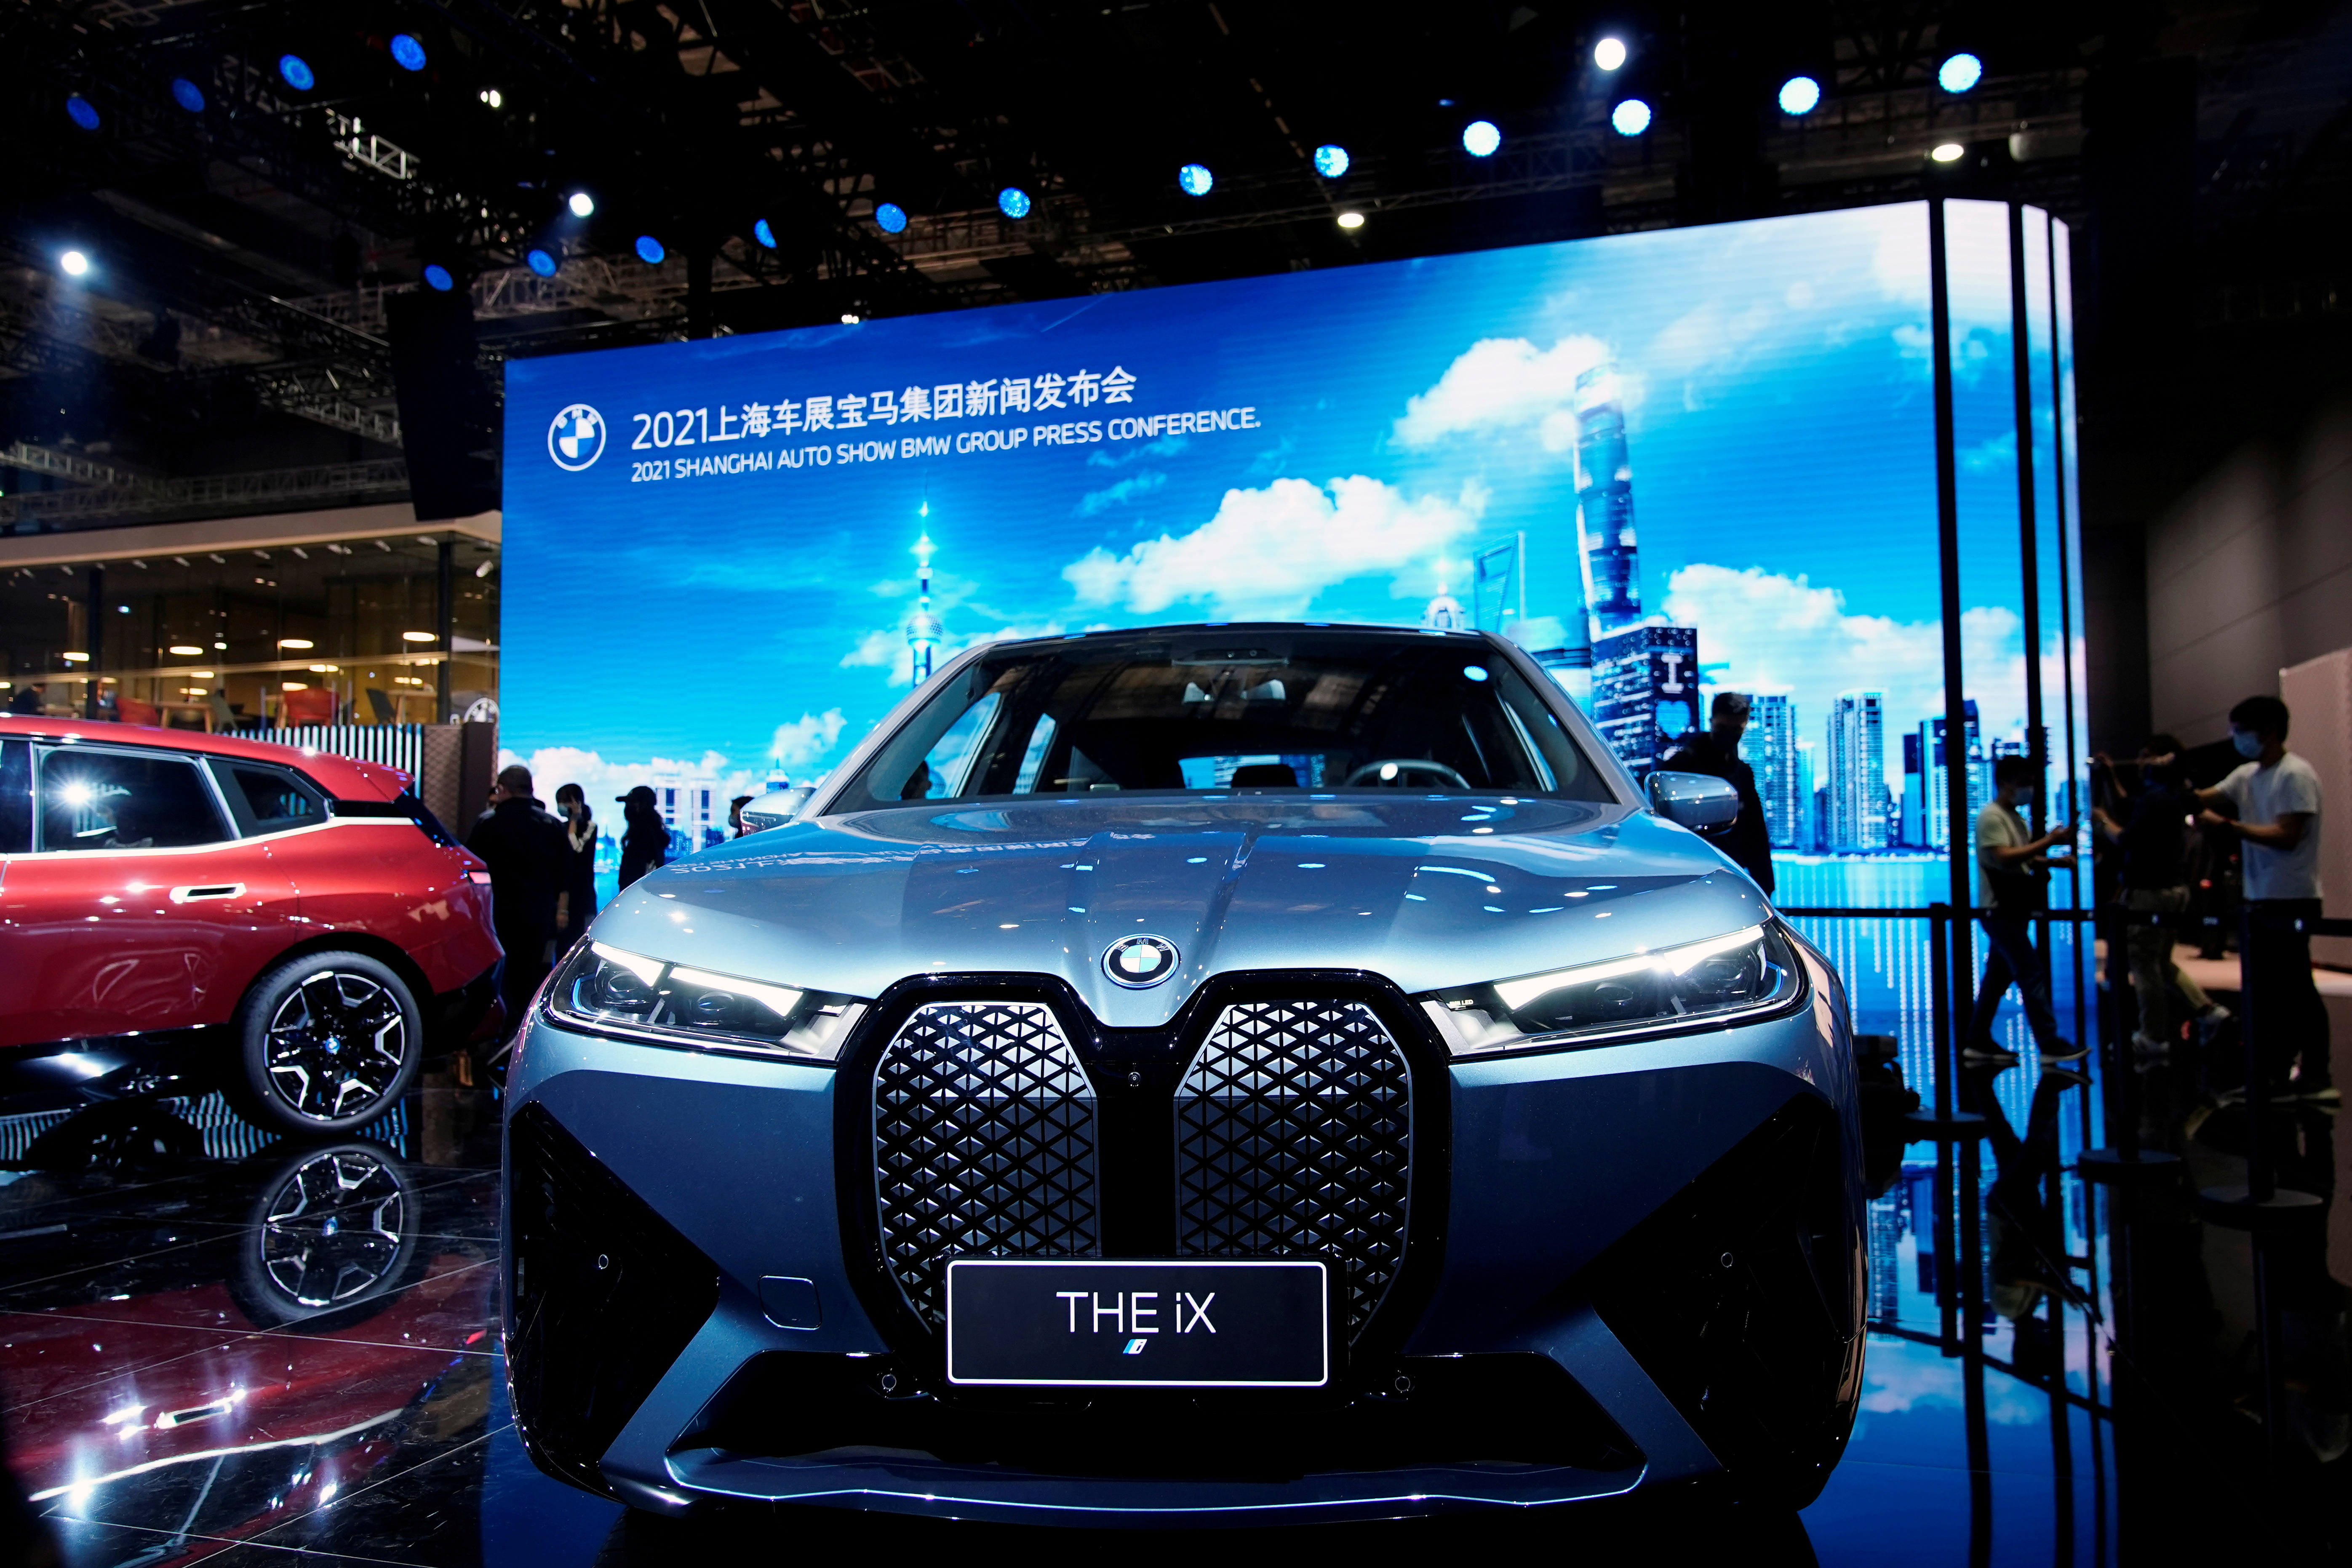 A BMW iX electric vehicle (EV) is seen displayed at the BMW booth during a media day for the Auto Shanghai show in Shanghai, China April 19, 2021. REUTERS/Aly Song/File Photo